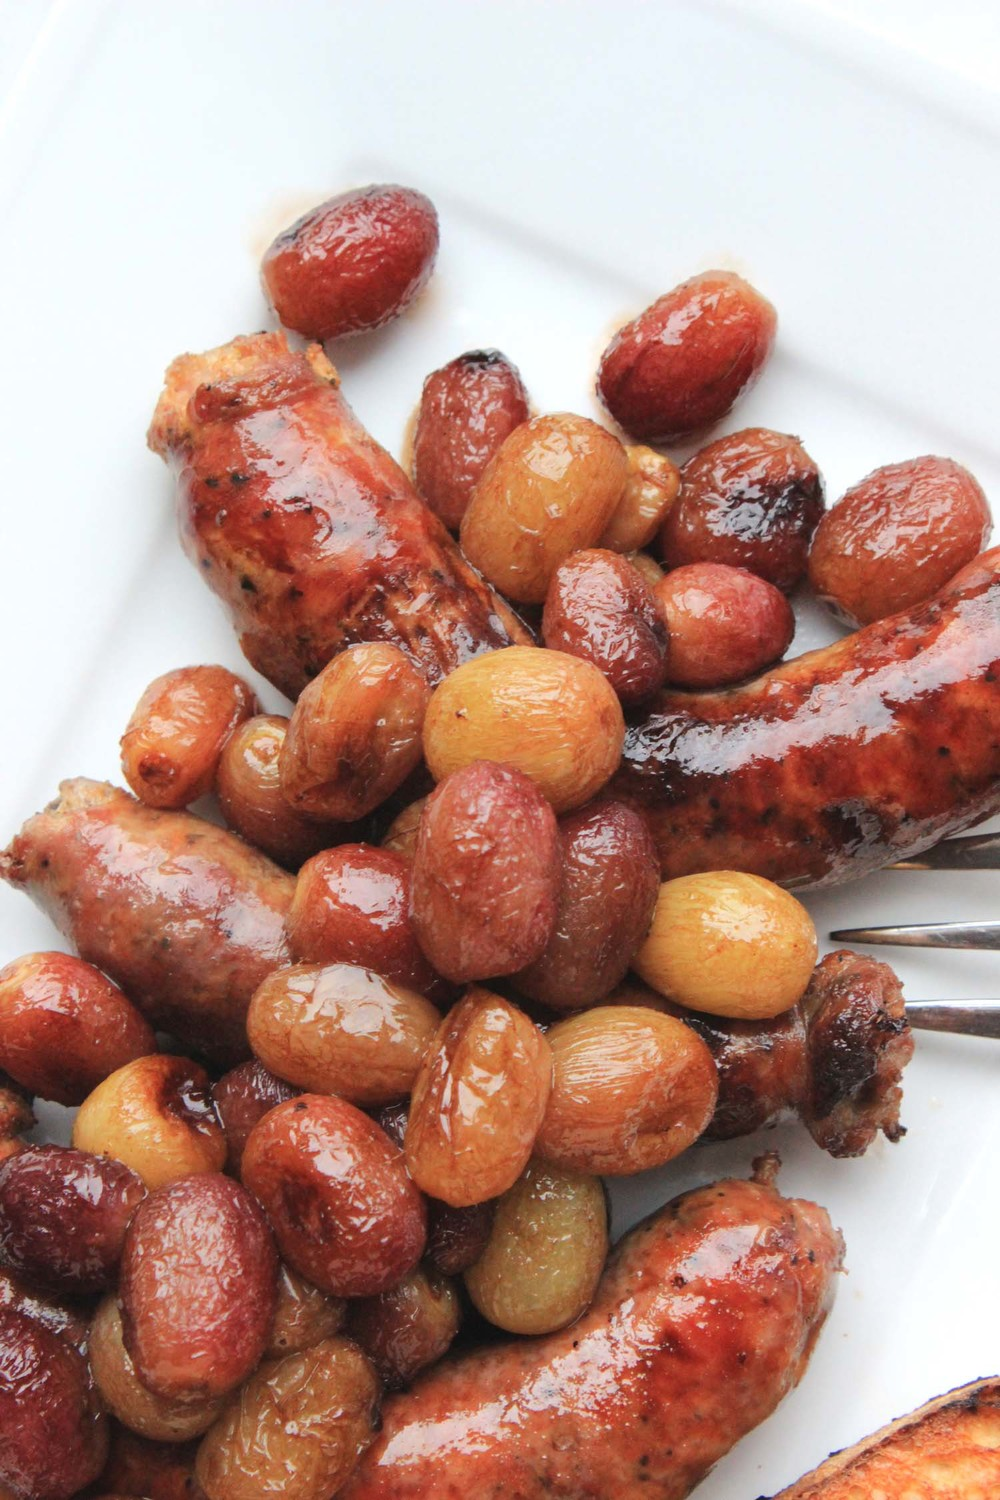 Roasted Sausages and Grapes   | Image:   Laura Messersmith